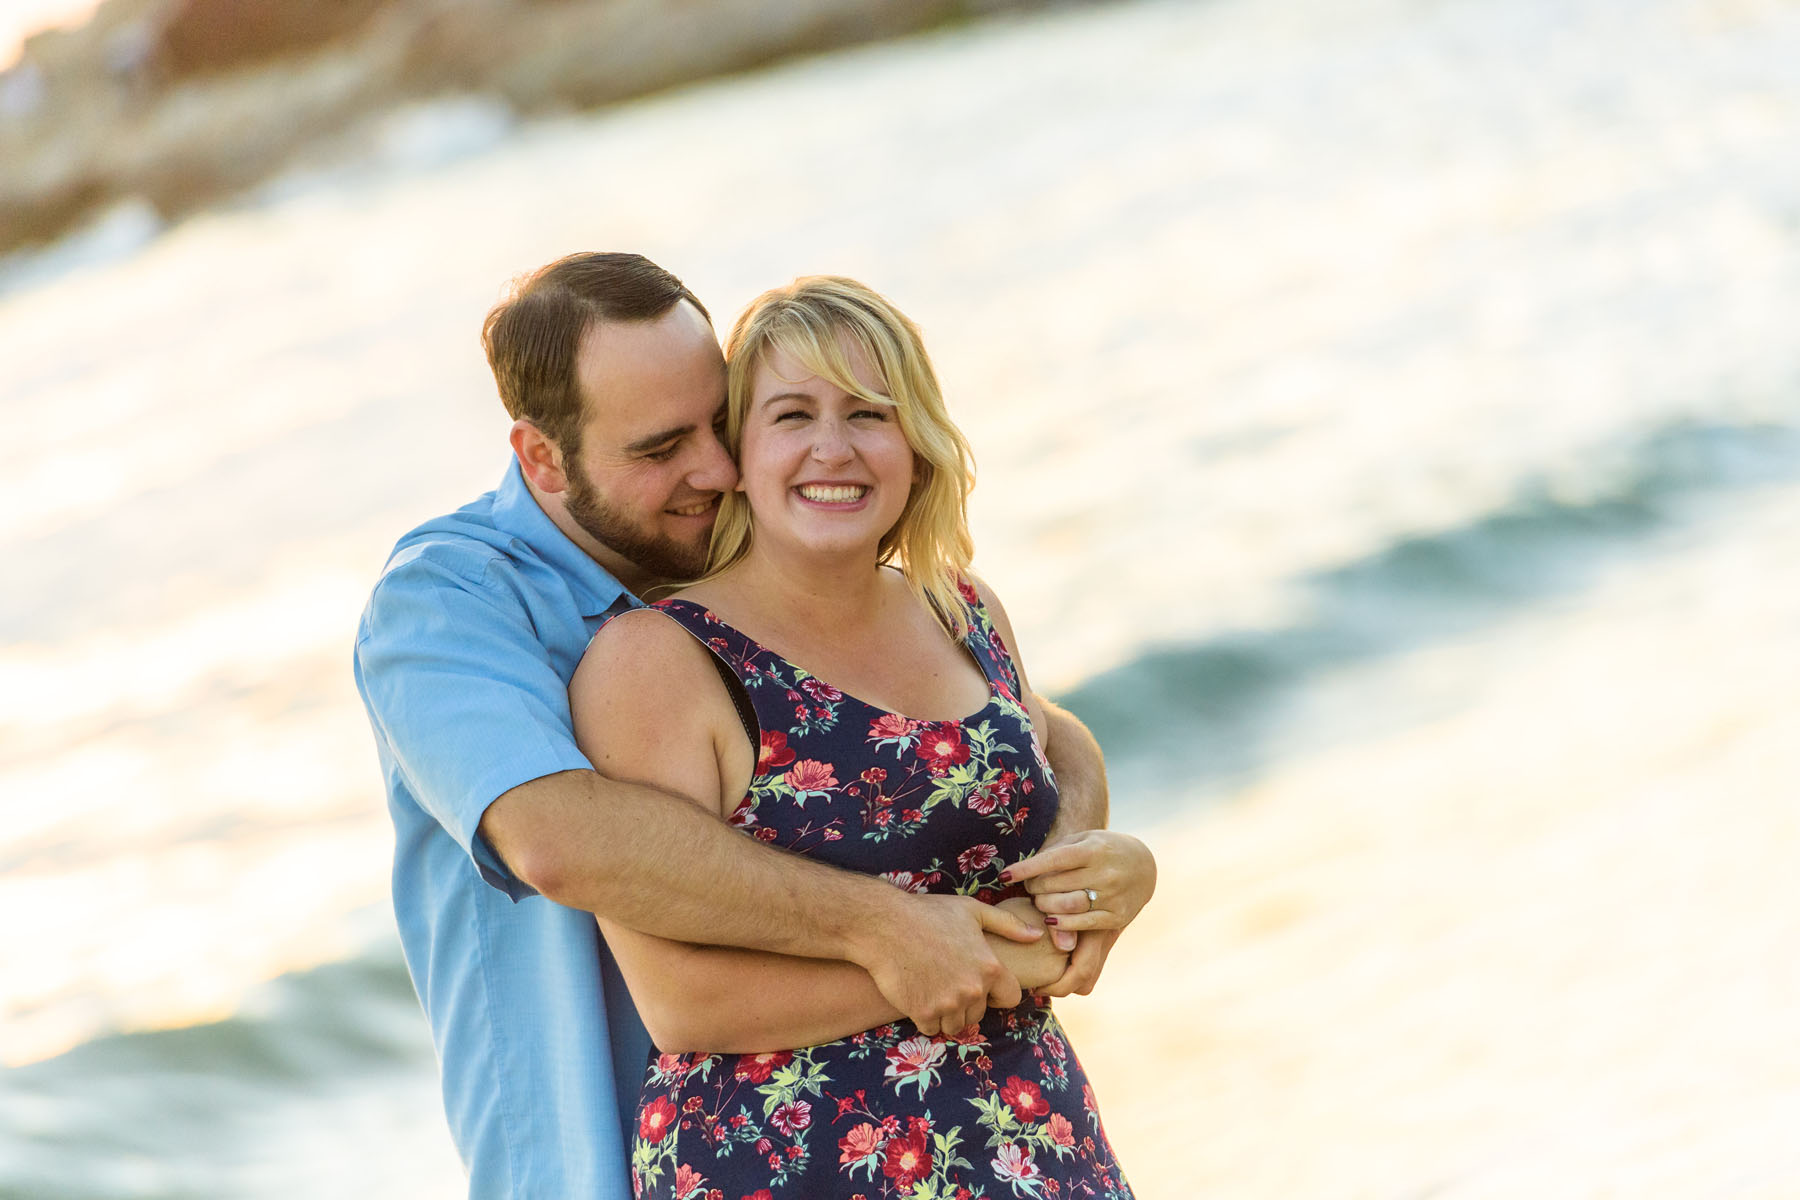 he hugs her from behind on the beach - Stewart's Cove - Carmel Engagement Photography - photos by Bay Area wedding photographer Chris Schmauch